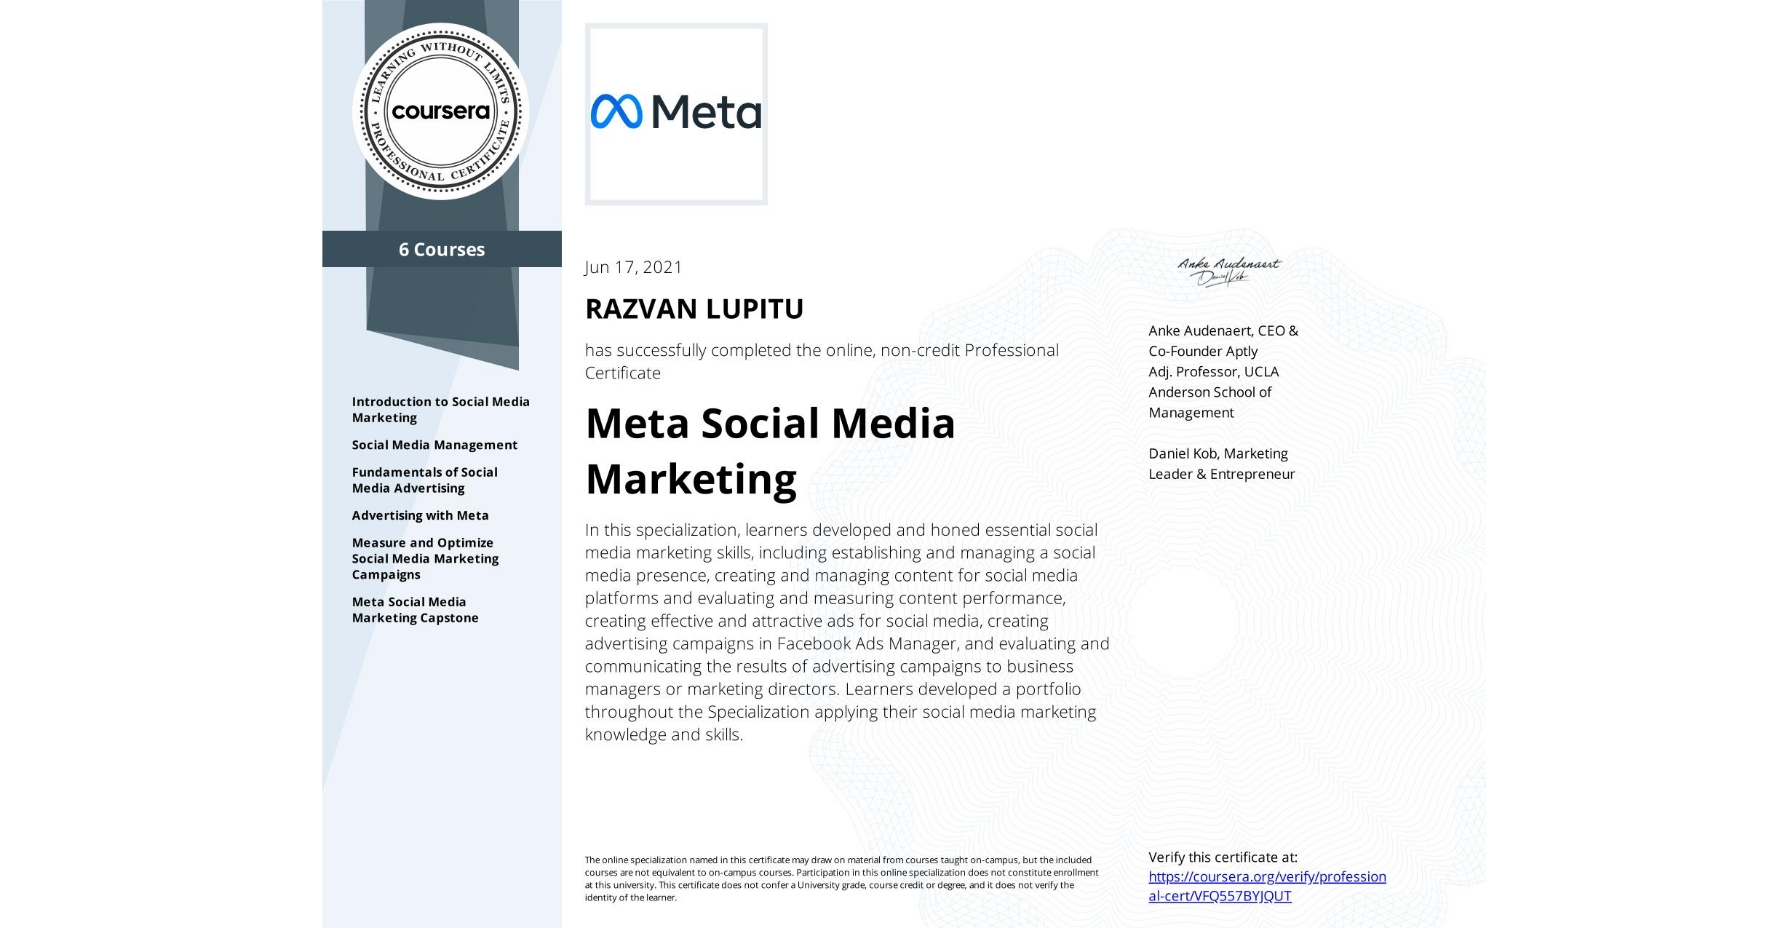 View certificate for RAZVAN LUPITU, Facebook Social Media Marketing, offered through Coursera. In this specialization, learners developed and honed essential social media marketing skills, including establishing and managing a social media presence, create and manage content for  social media platforms and evaluate and measure content performance, create effective and attractive ads for social media, create advertising campaigns in Facebook Ads Manager, and evaluate and communicate the results of advertising campaigns to business managers or marketing directors. Learners developed a portfolio throughout the Specialization applying their social media marketing knowledge and skills.